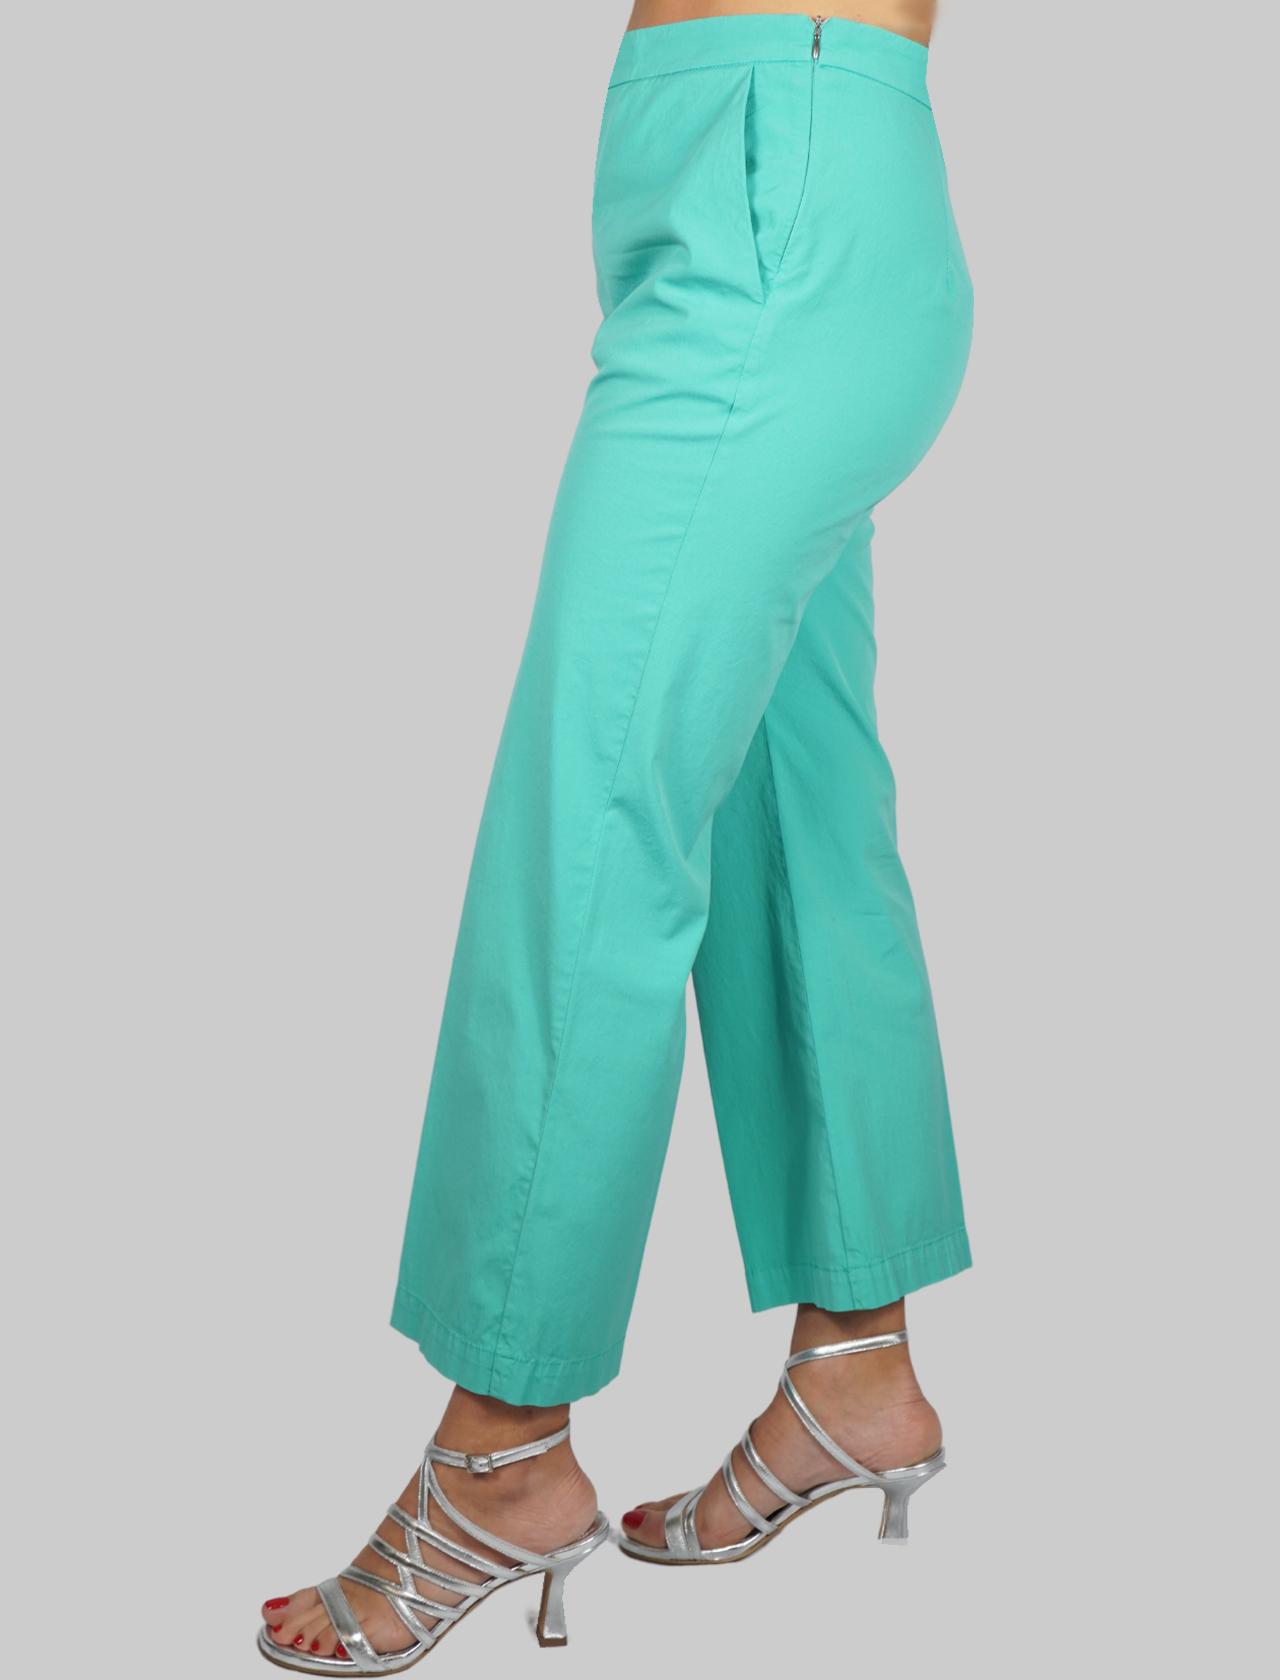 Women's Clothing Stretch Satin Cotton Turquoise Trousers Maliparmi | Skirts and Pants | JH71441013782012